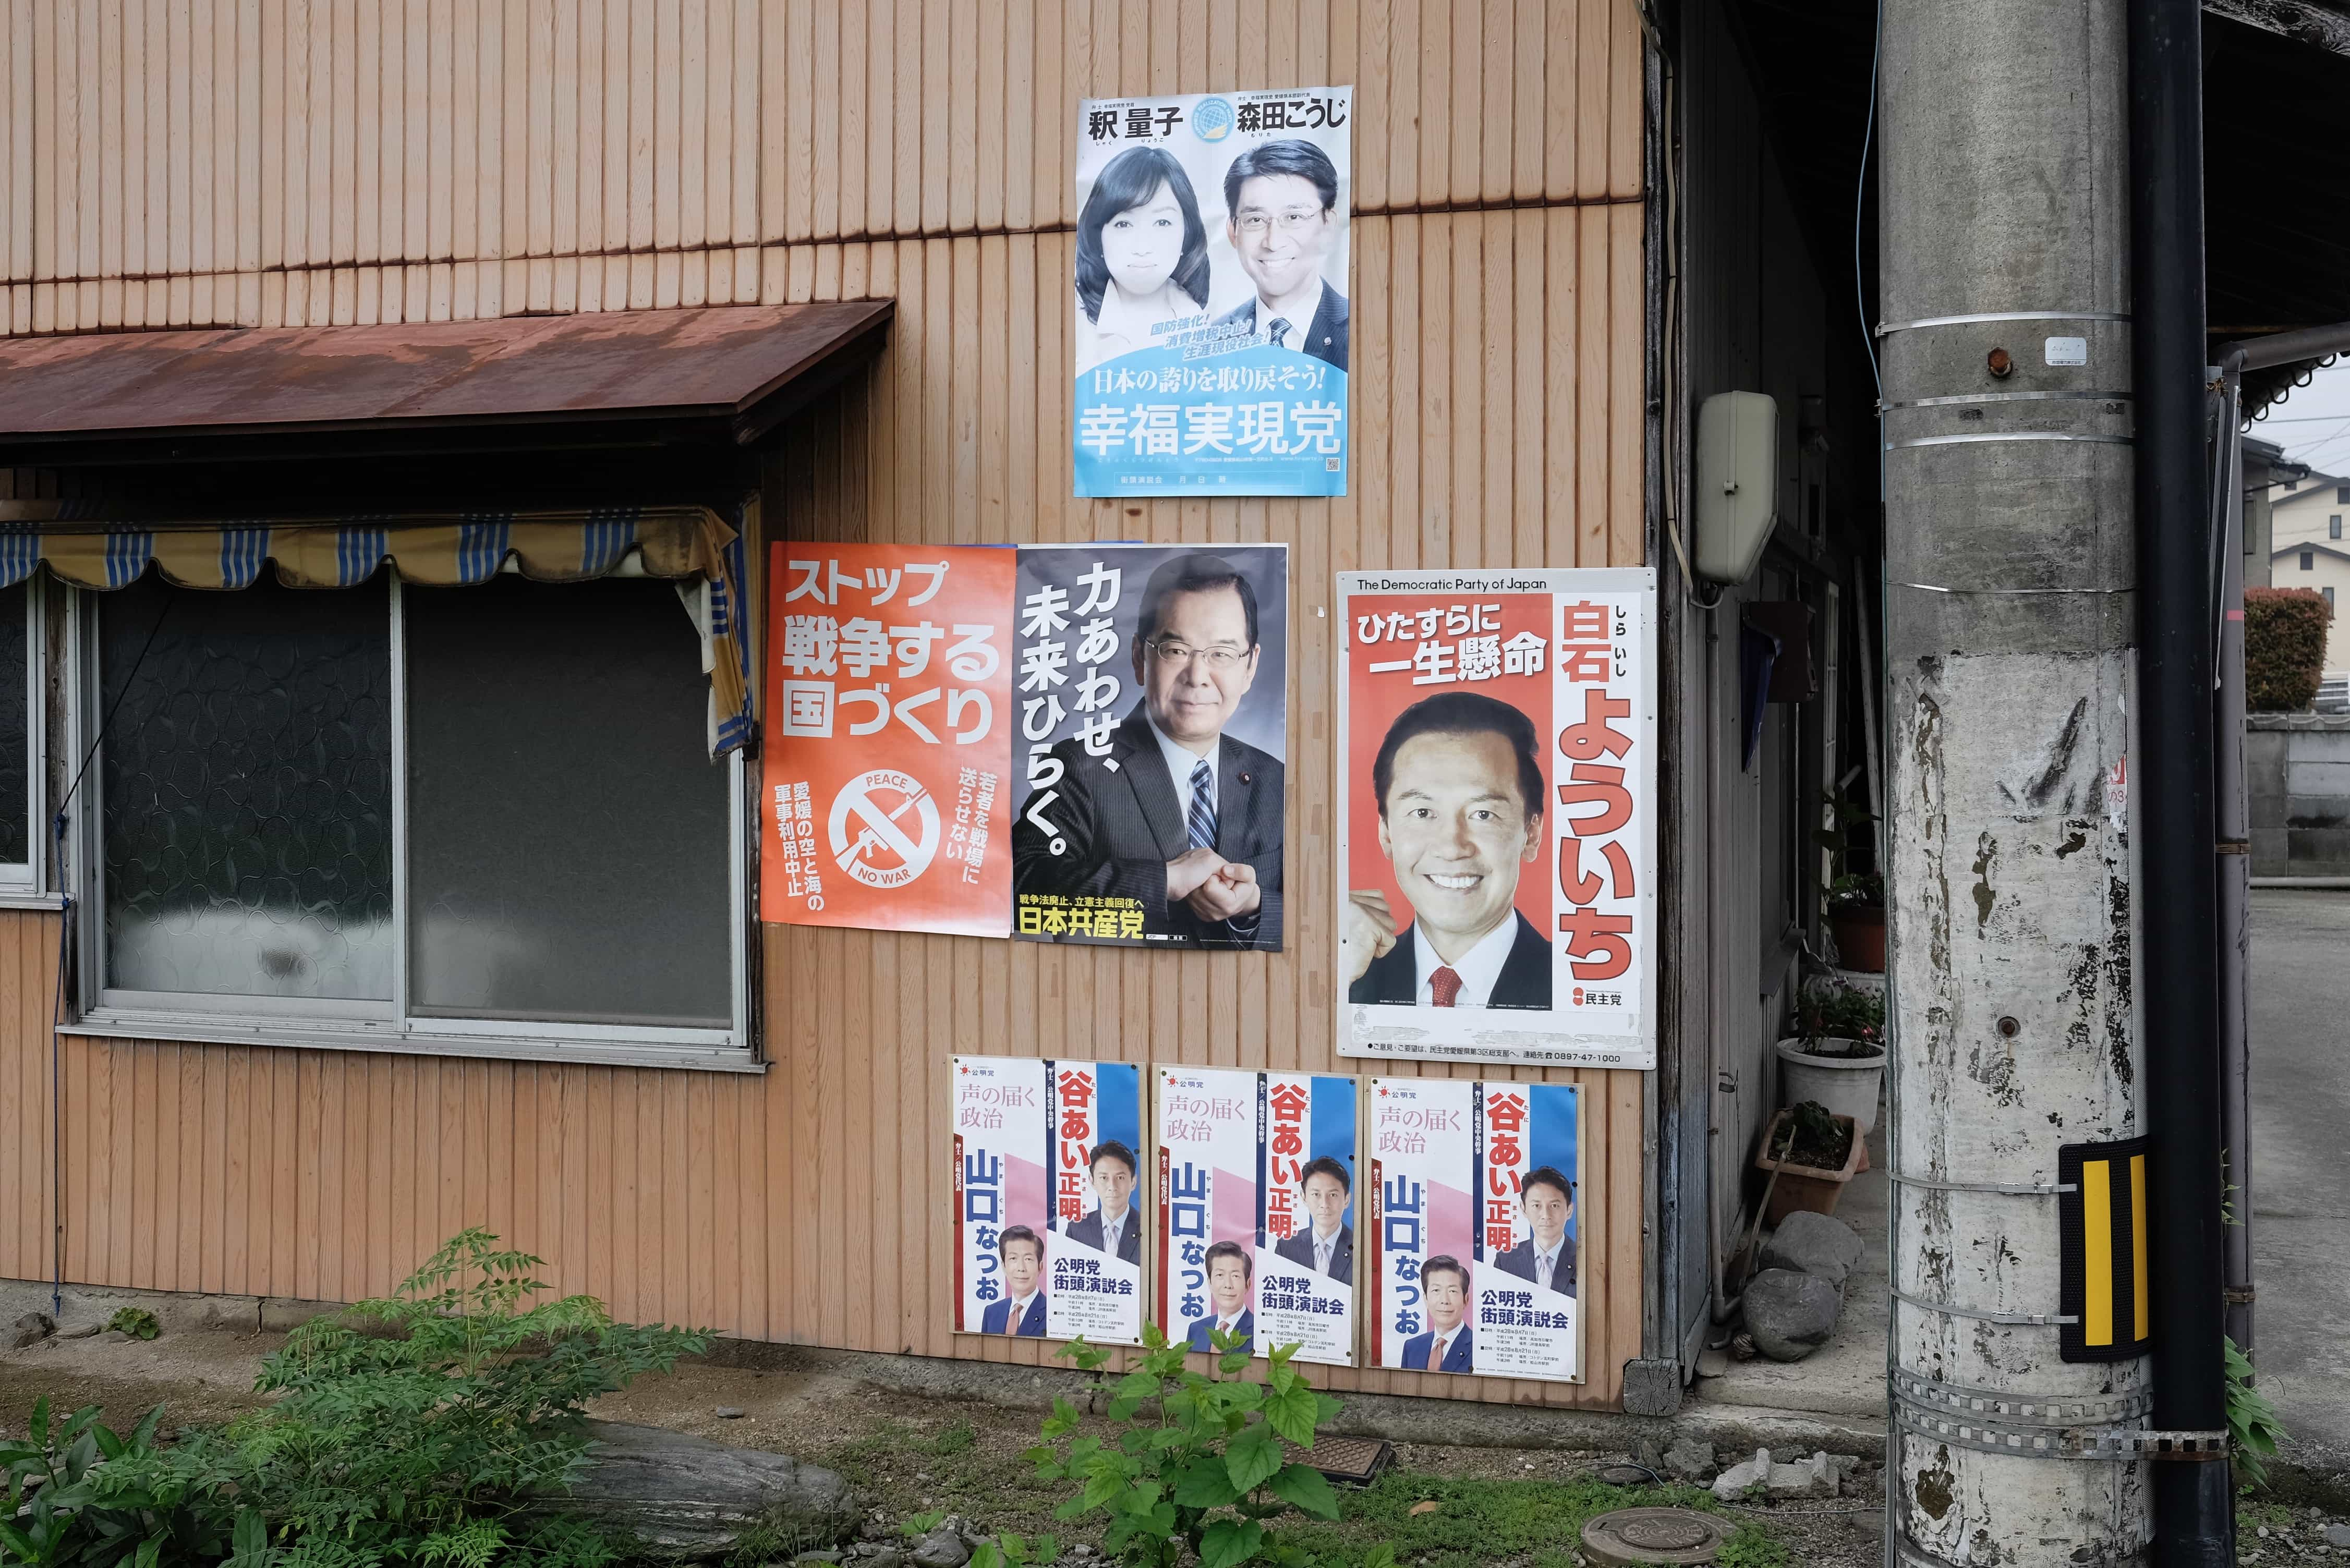 Japanese political posters